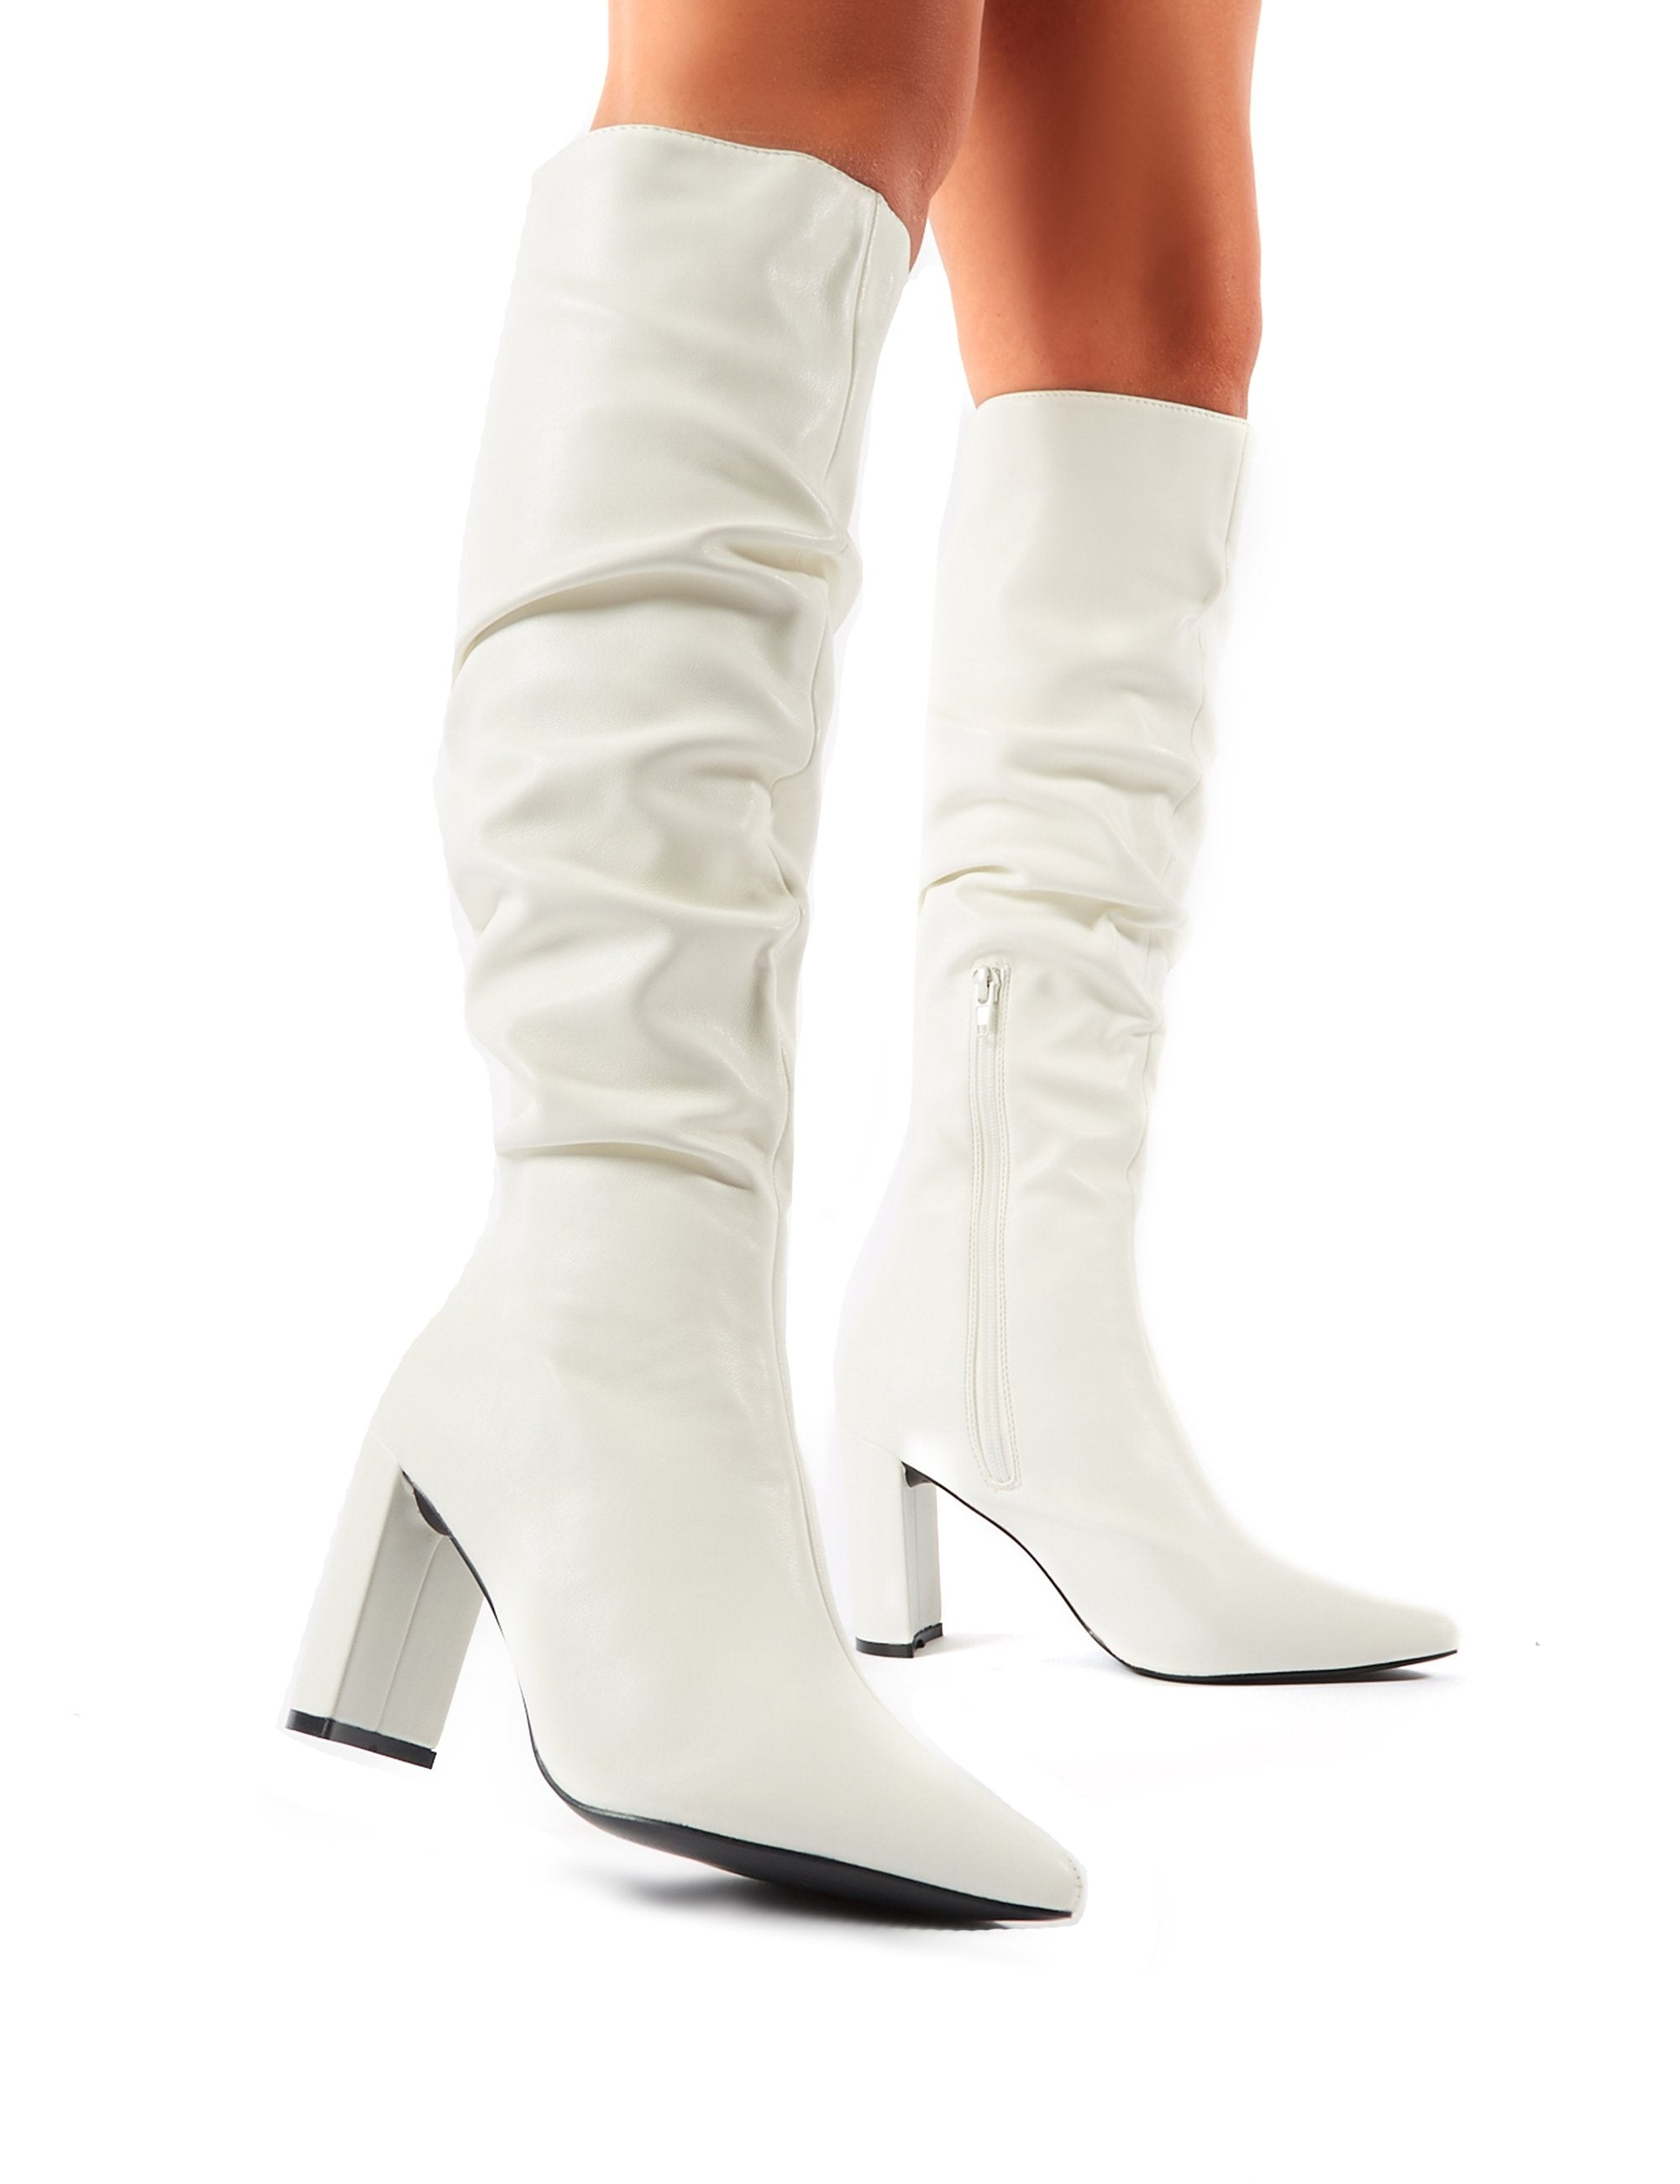 Mine Knee High Boots in White | Public